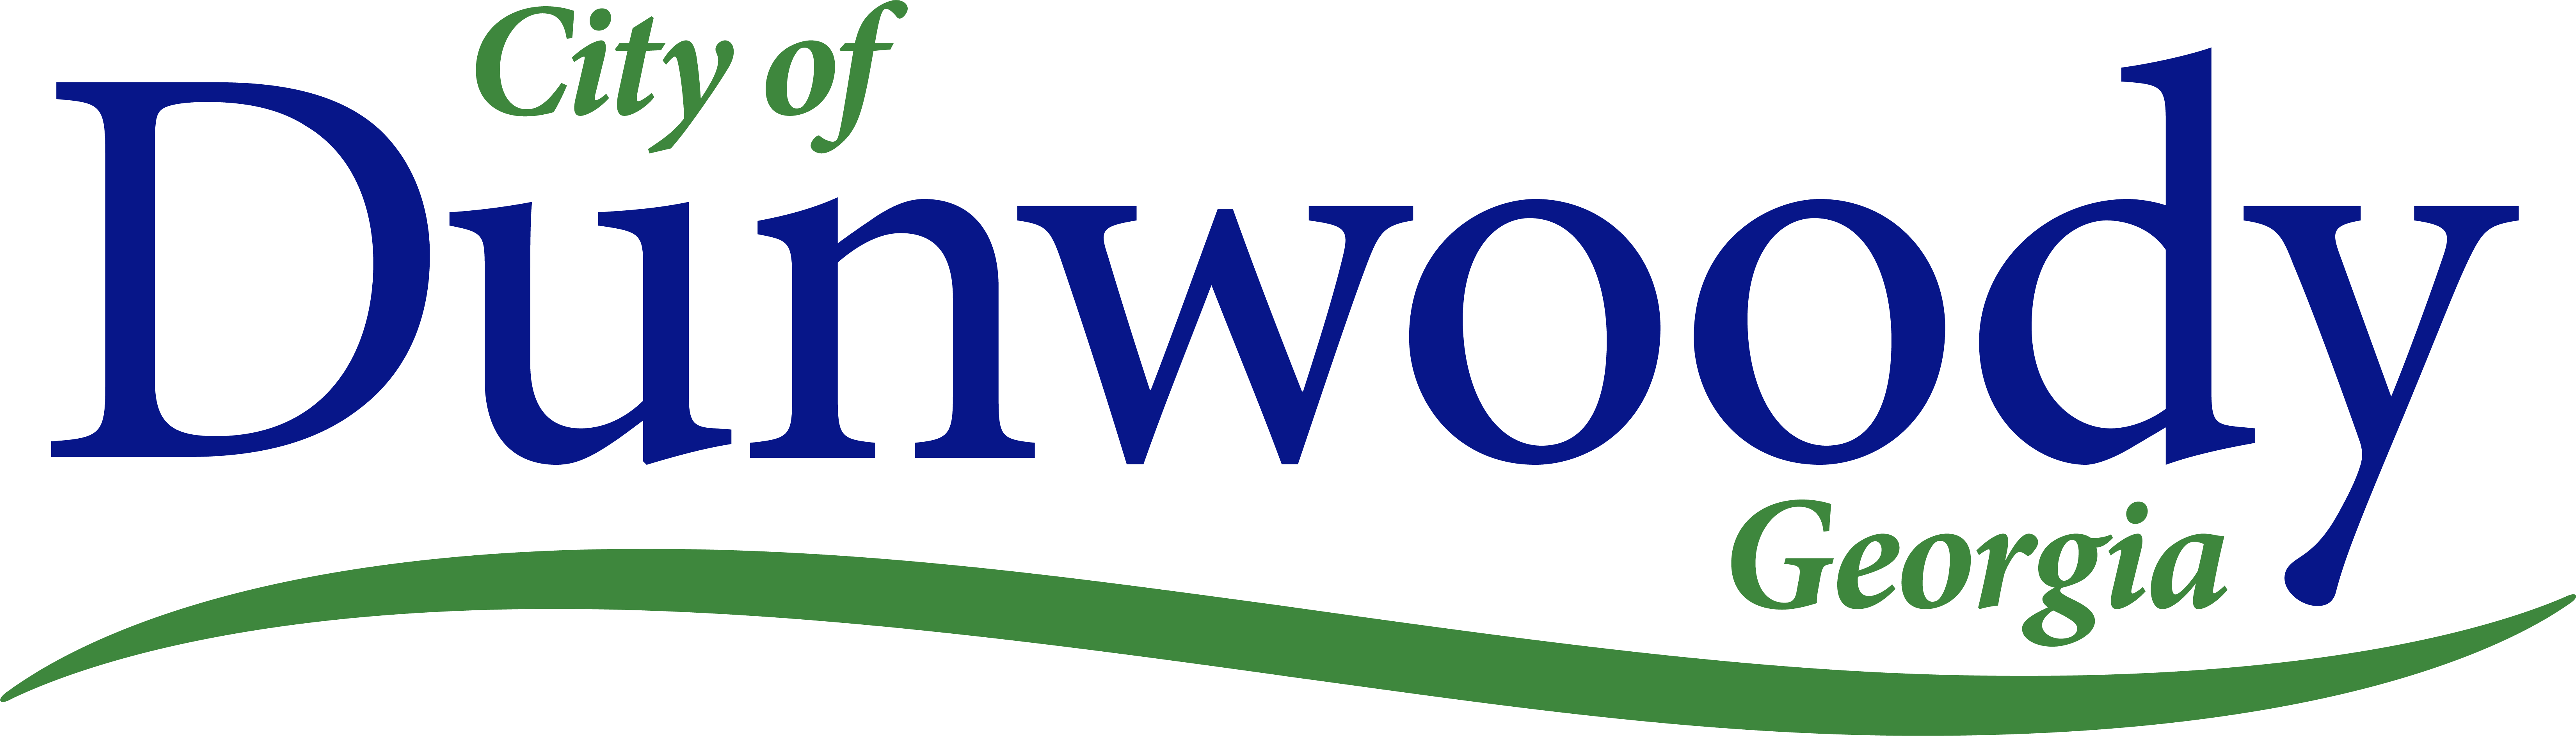 Organization logo of The City of Dunwoody